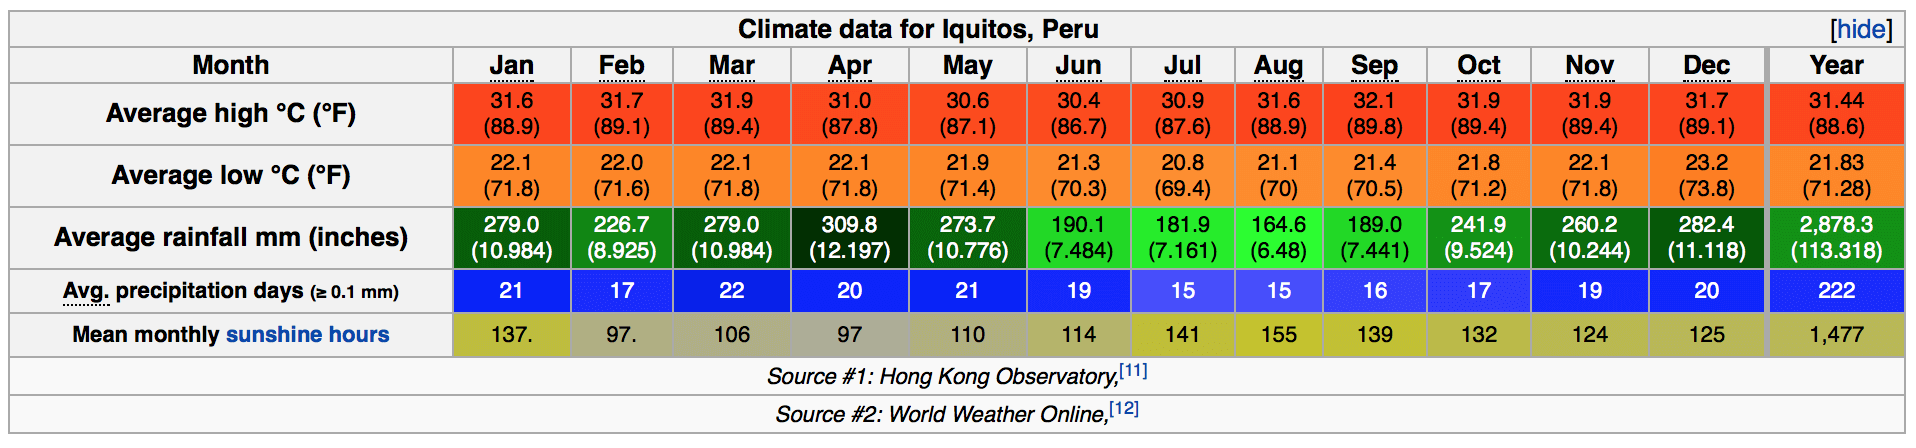 Iquitos Climate. Source: Wikipedia